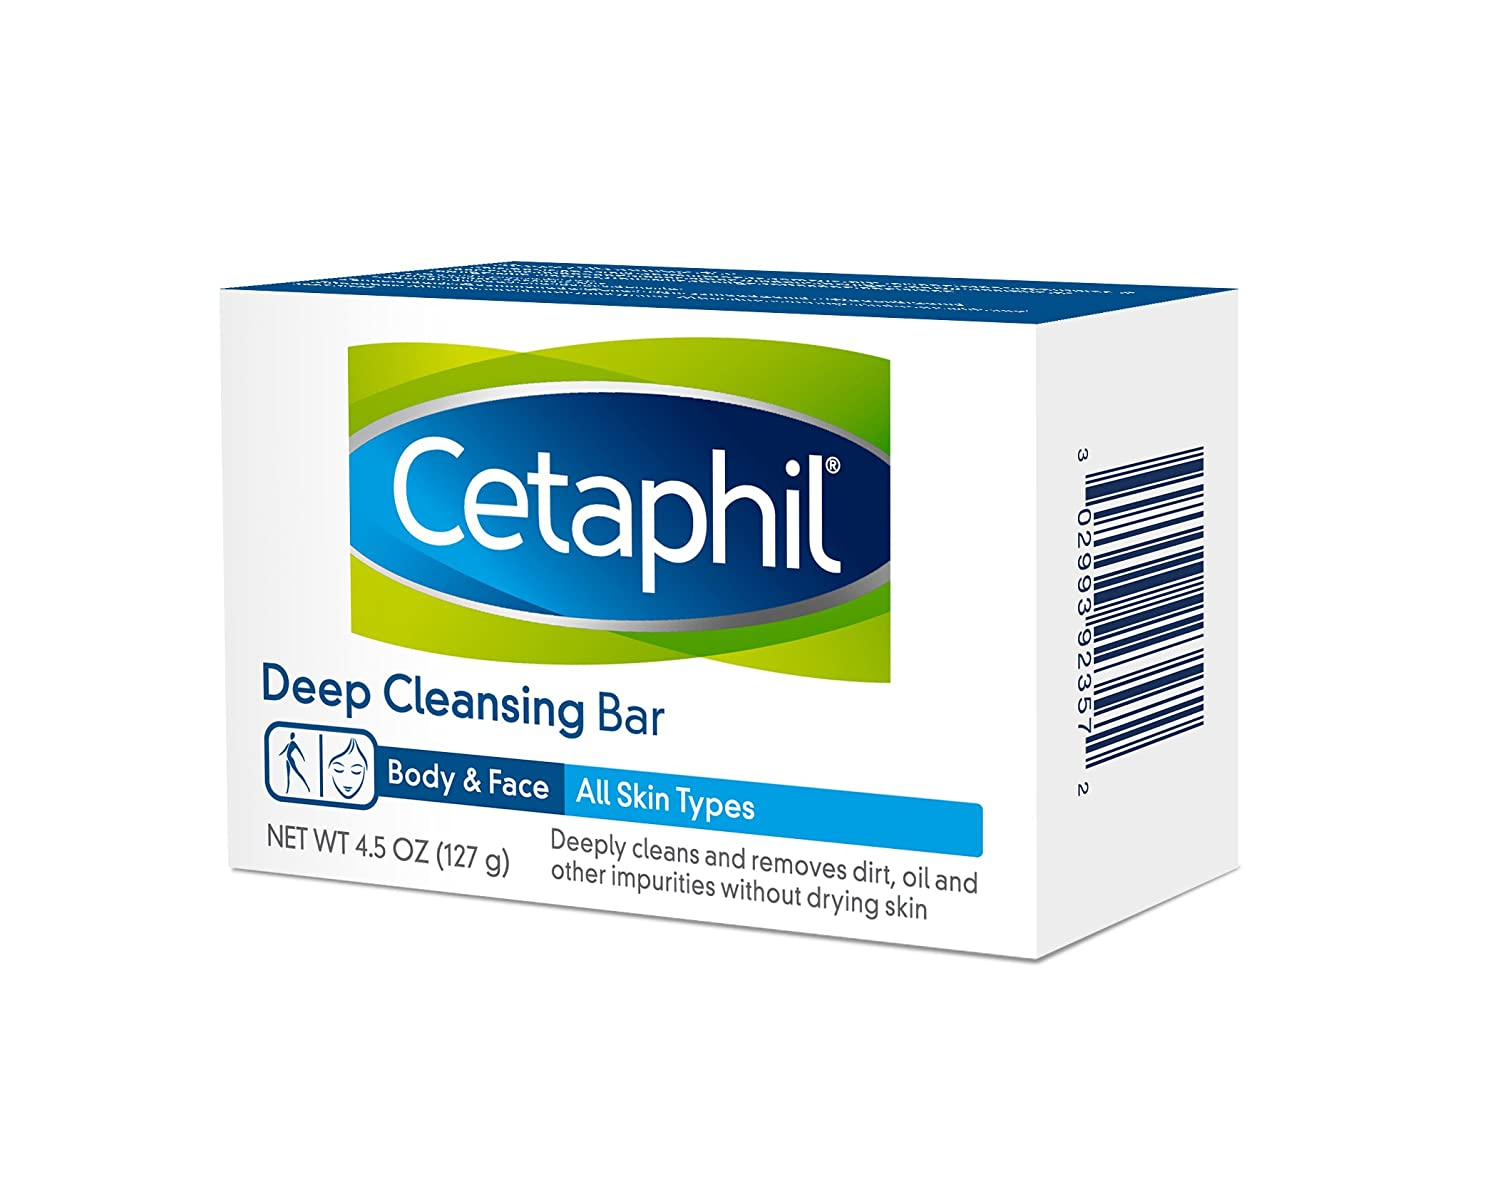 Cetaphil Deep Cleansing Face and Body Bar